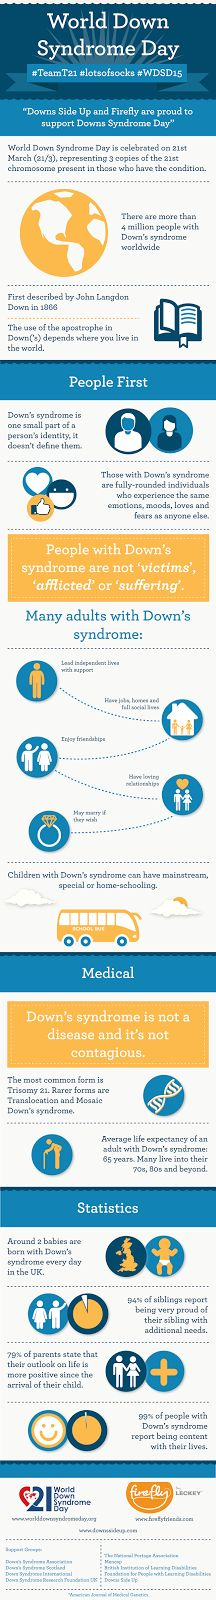 Downs Side Up and Firefly produce an infographic of facts about Down syndrome for World Down Syndrome Day #WDSD15 2015